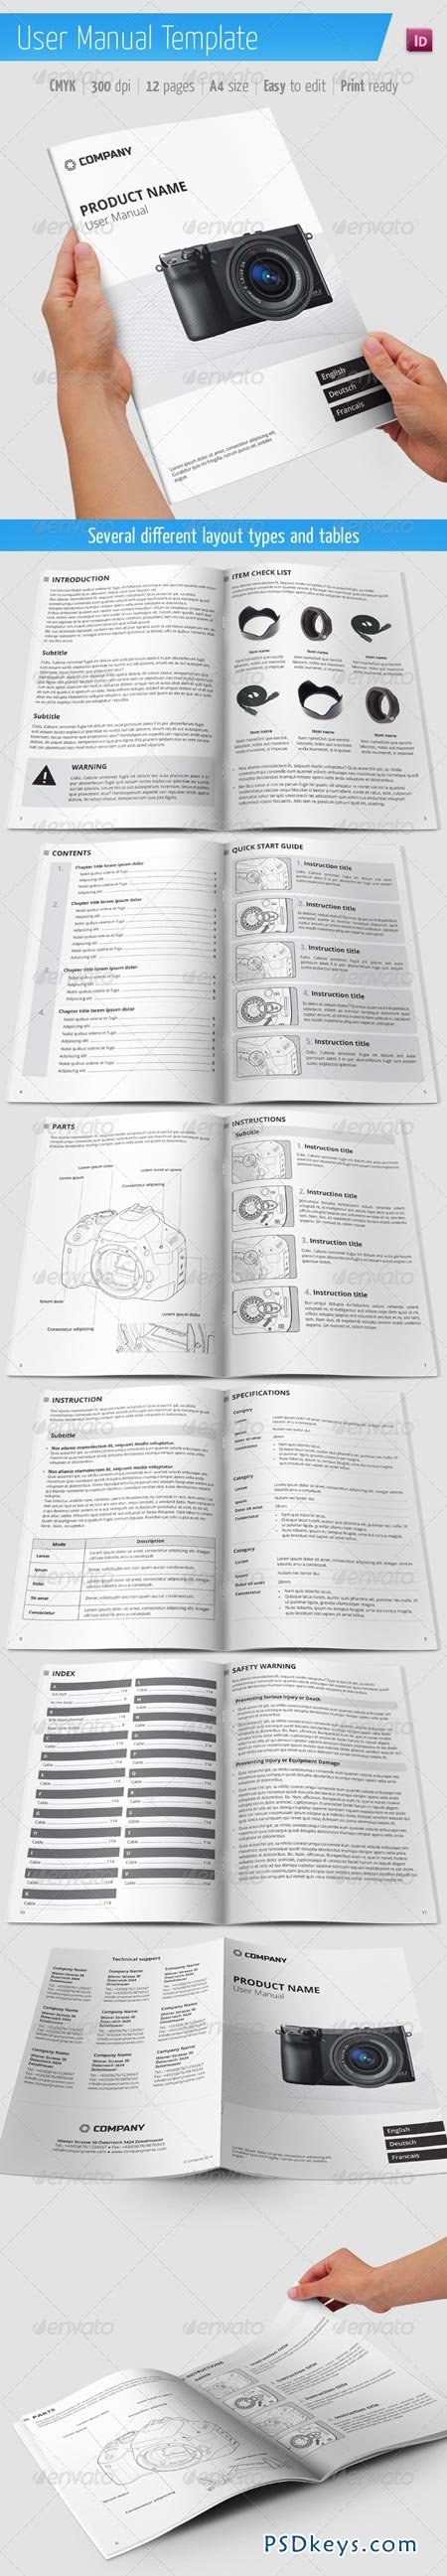 User Manual Template 6477700 » Free Download Photoshop Vector Stock ...